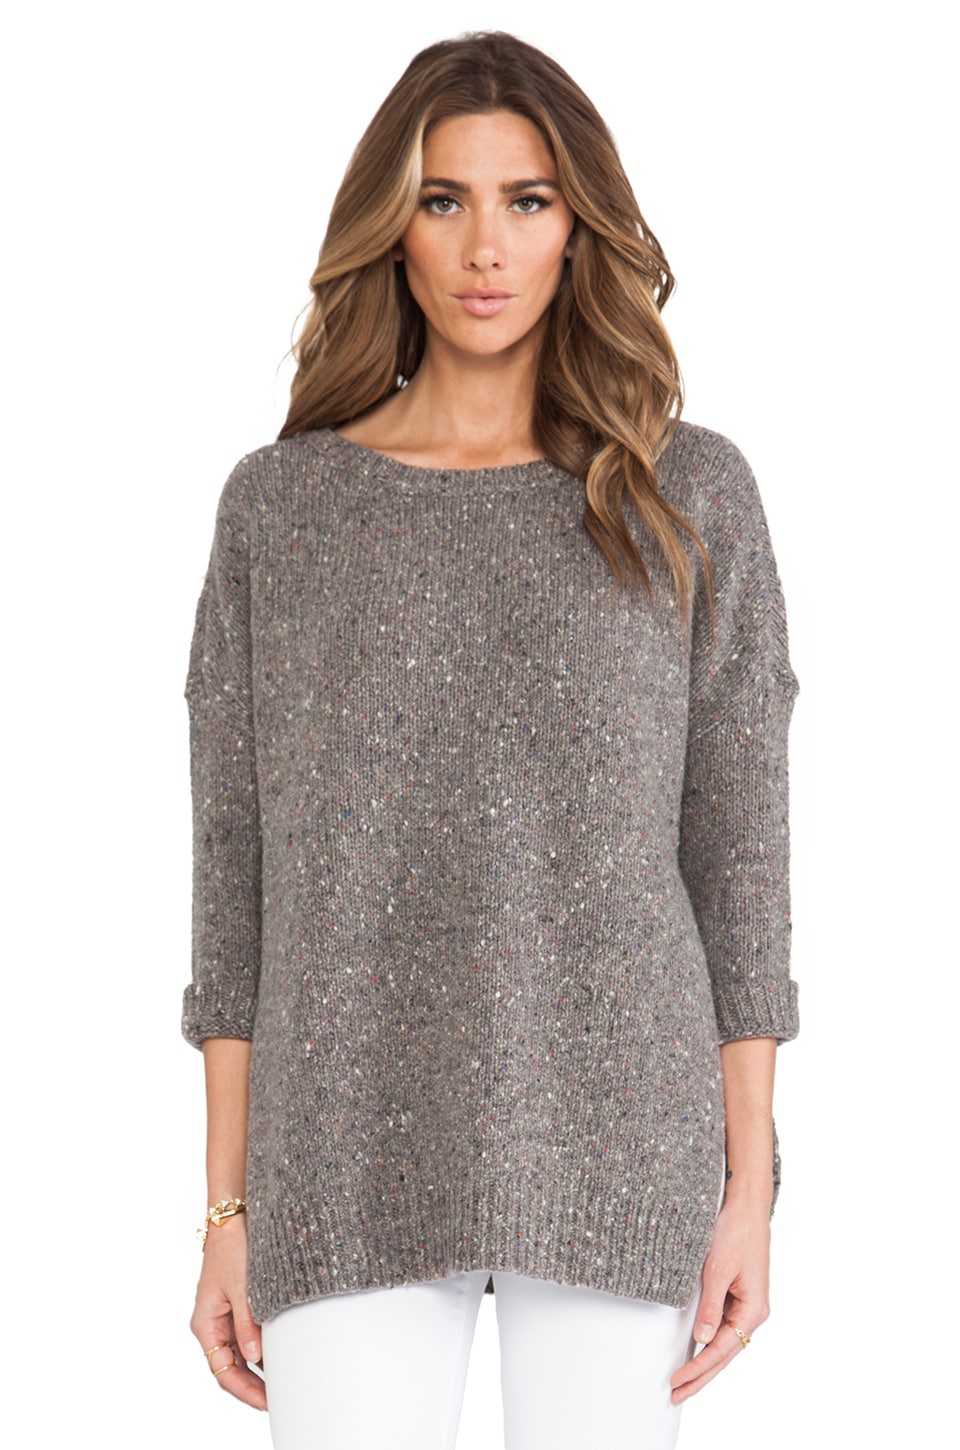 Inhabit Donegal Outdoor Sweater in Mid-Grey